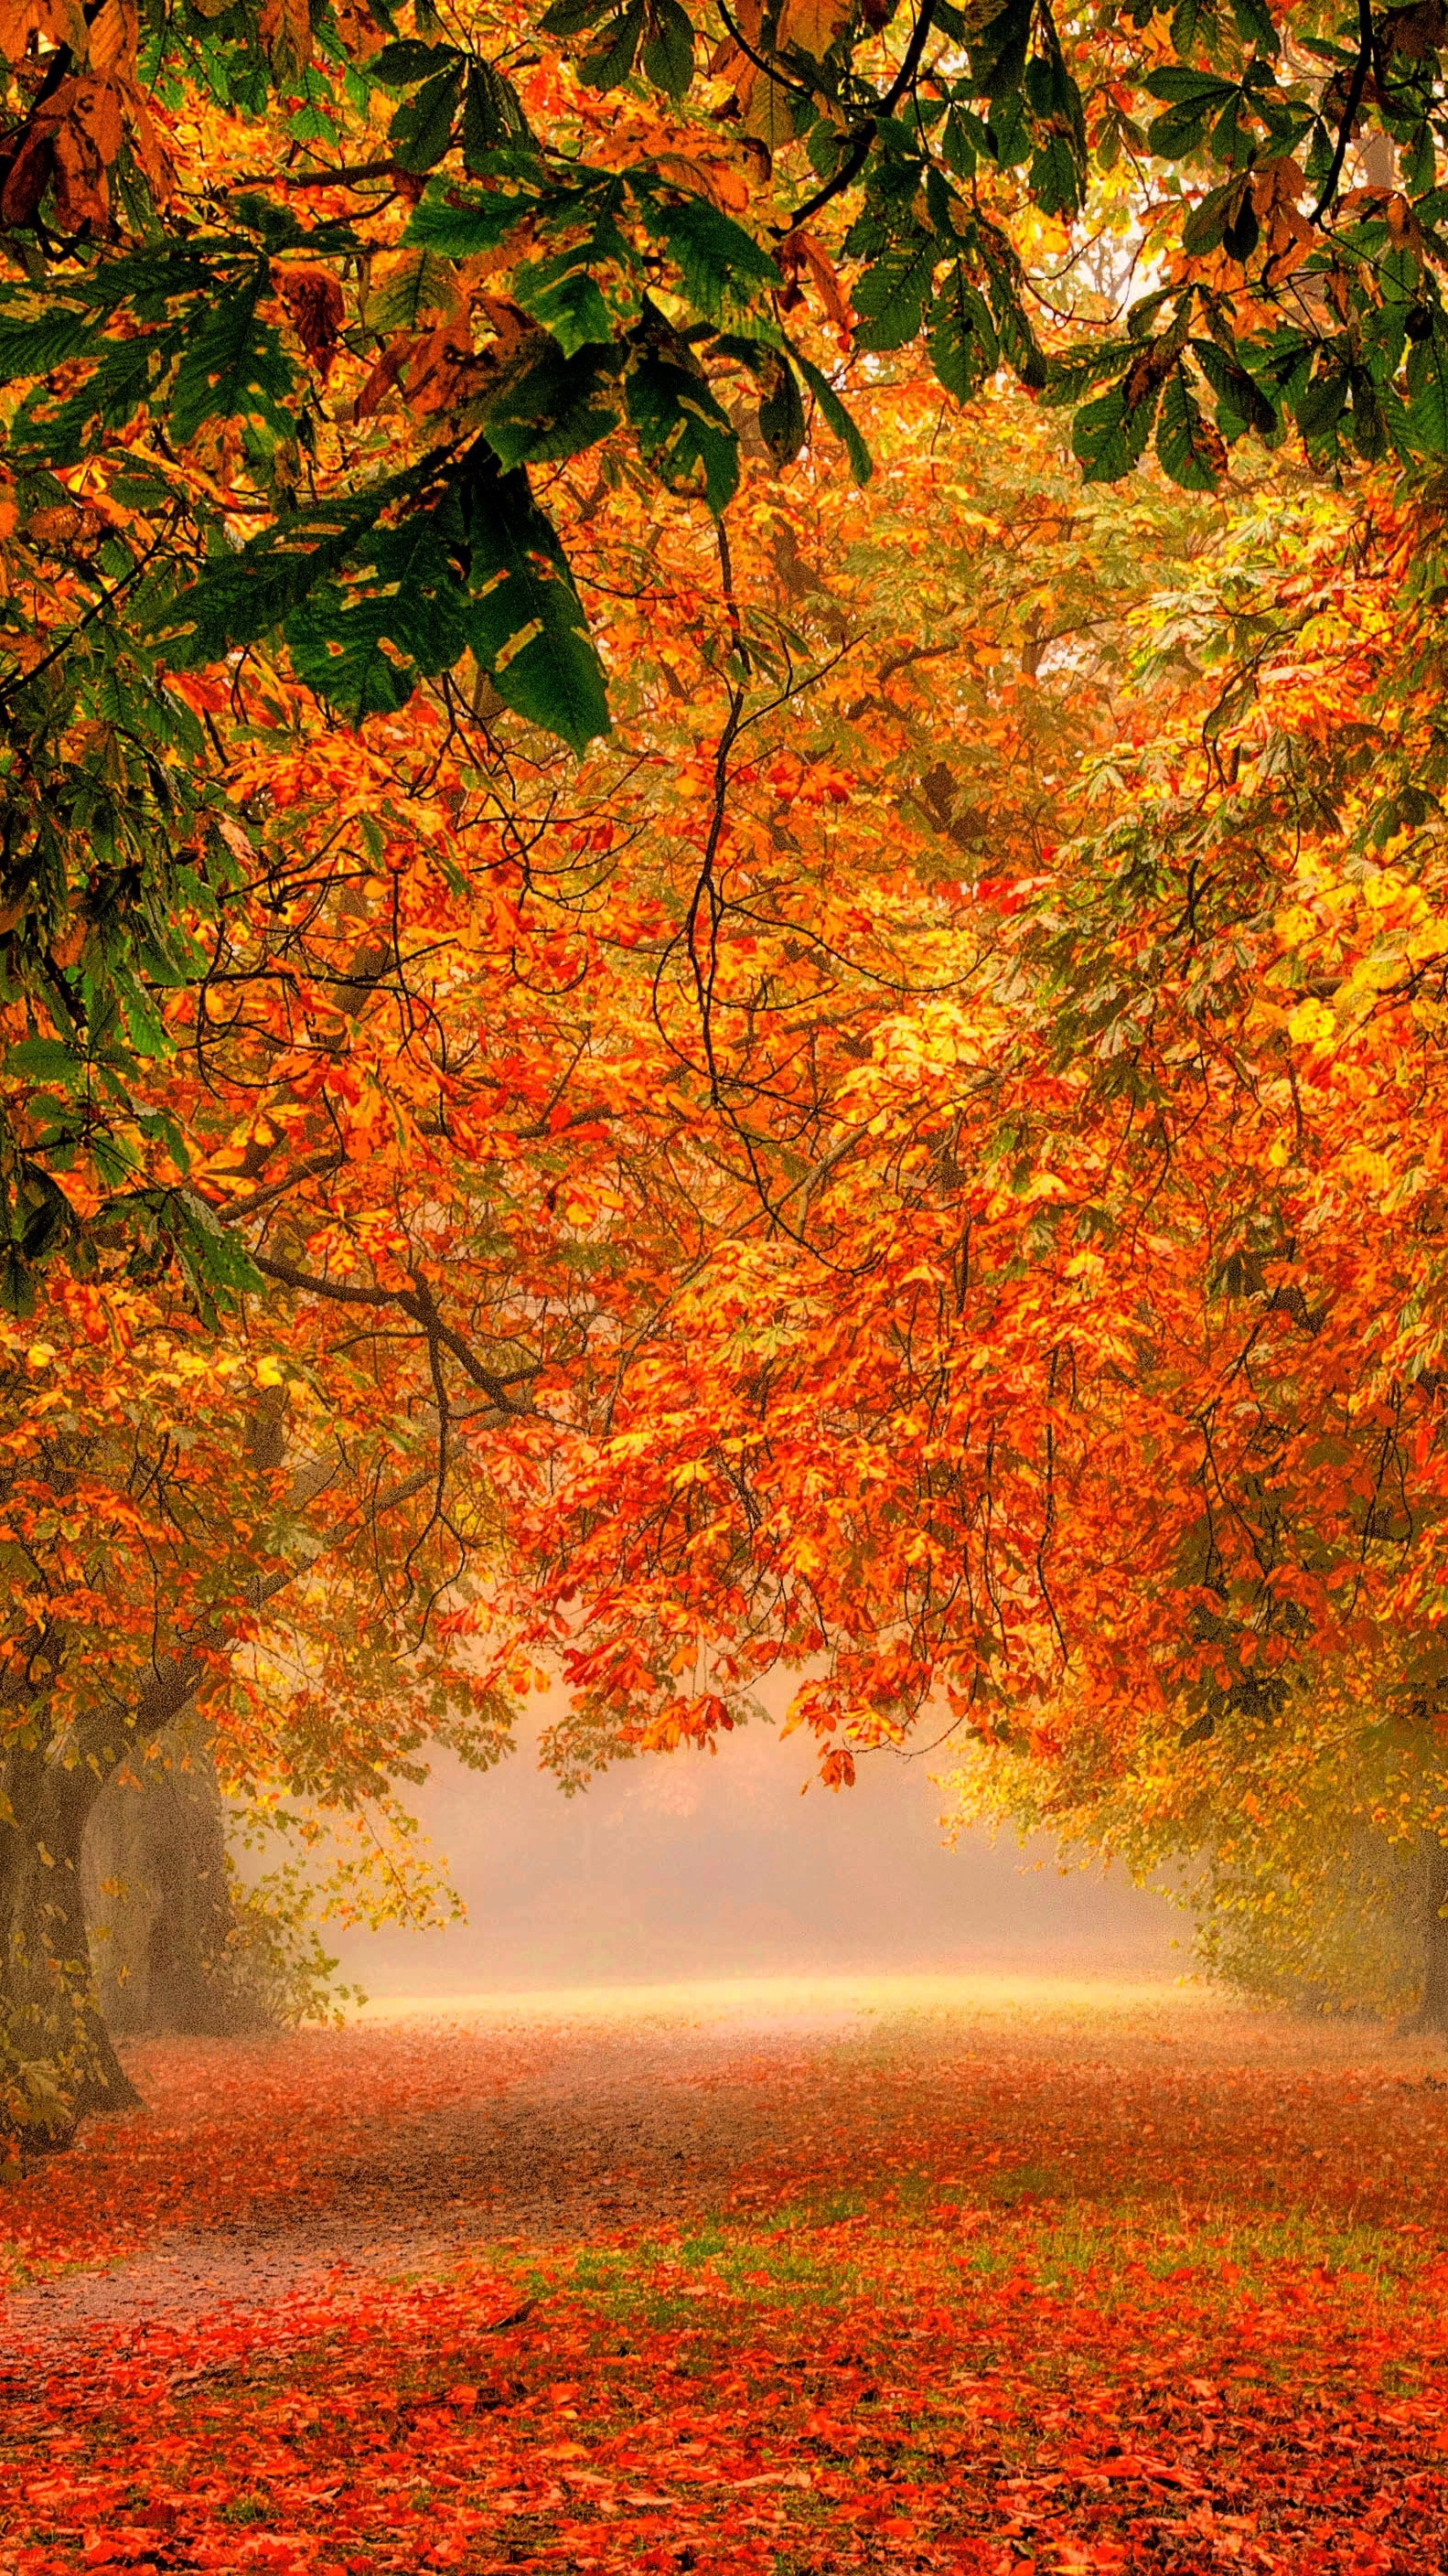 Wallpaper Focus >> forest-nature-park-colorful-leaves-iPhone-Wallpaper - iPhone Wallpapers